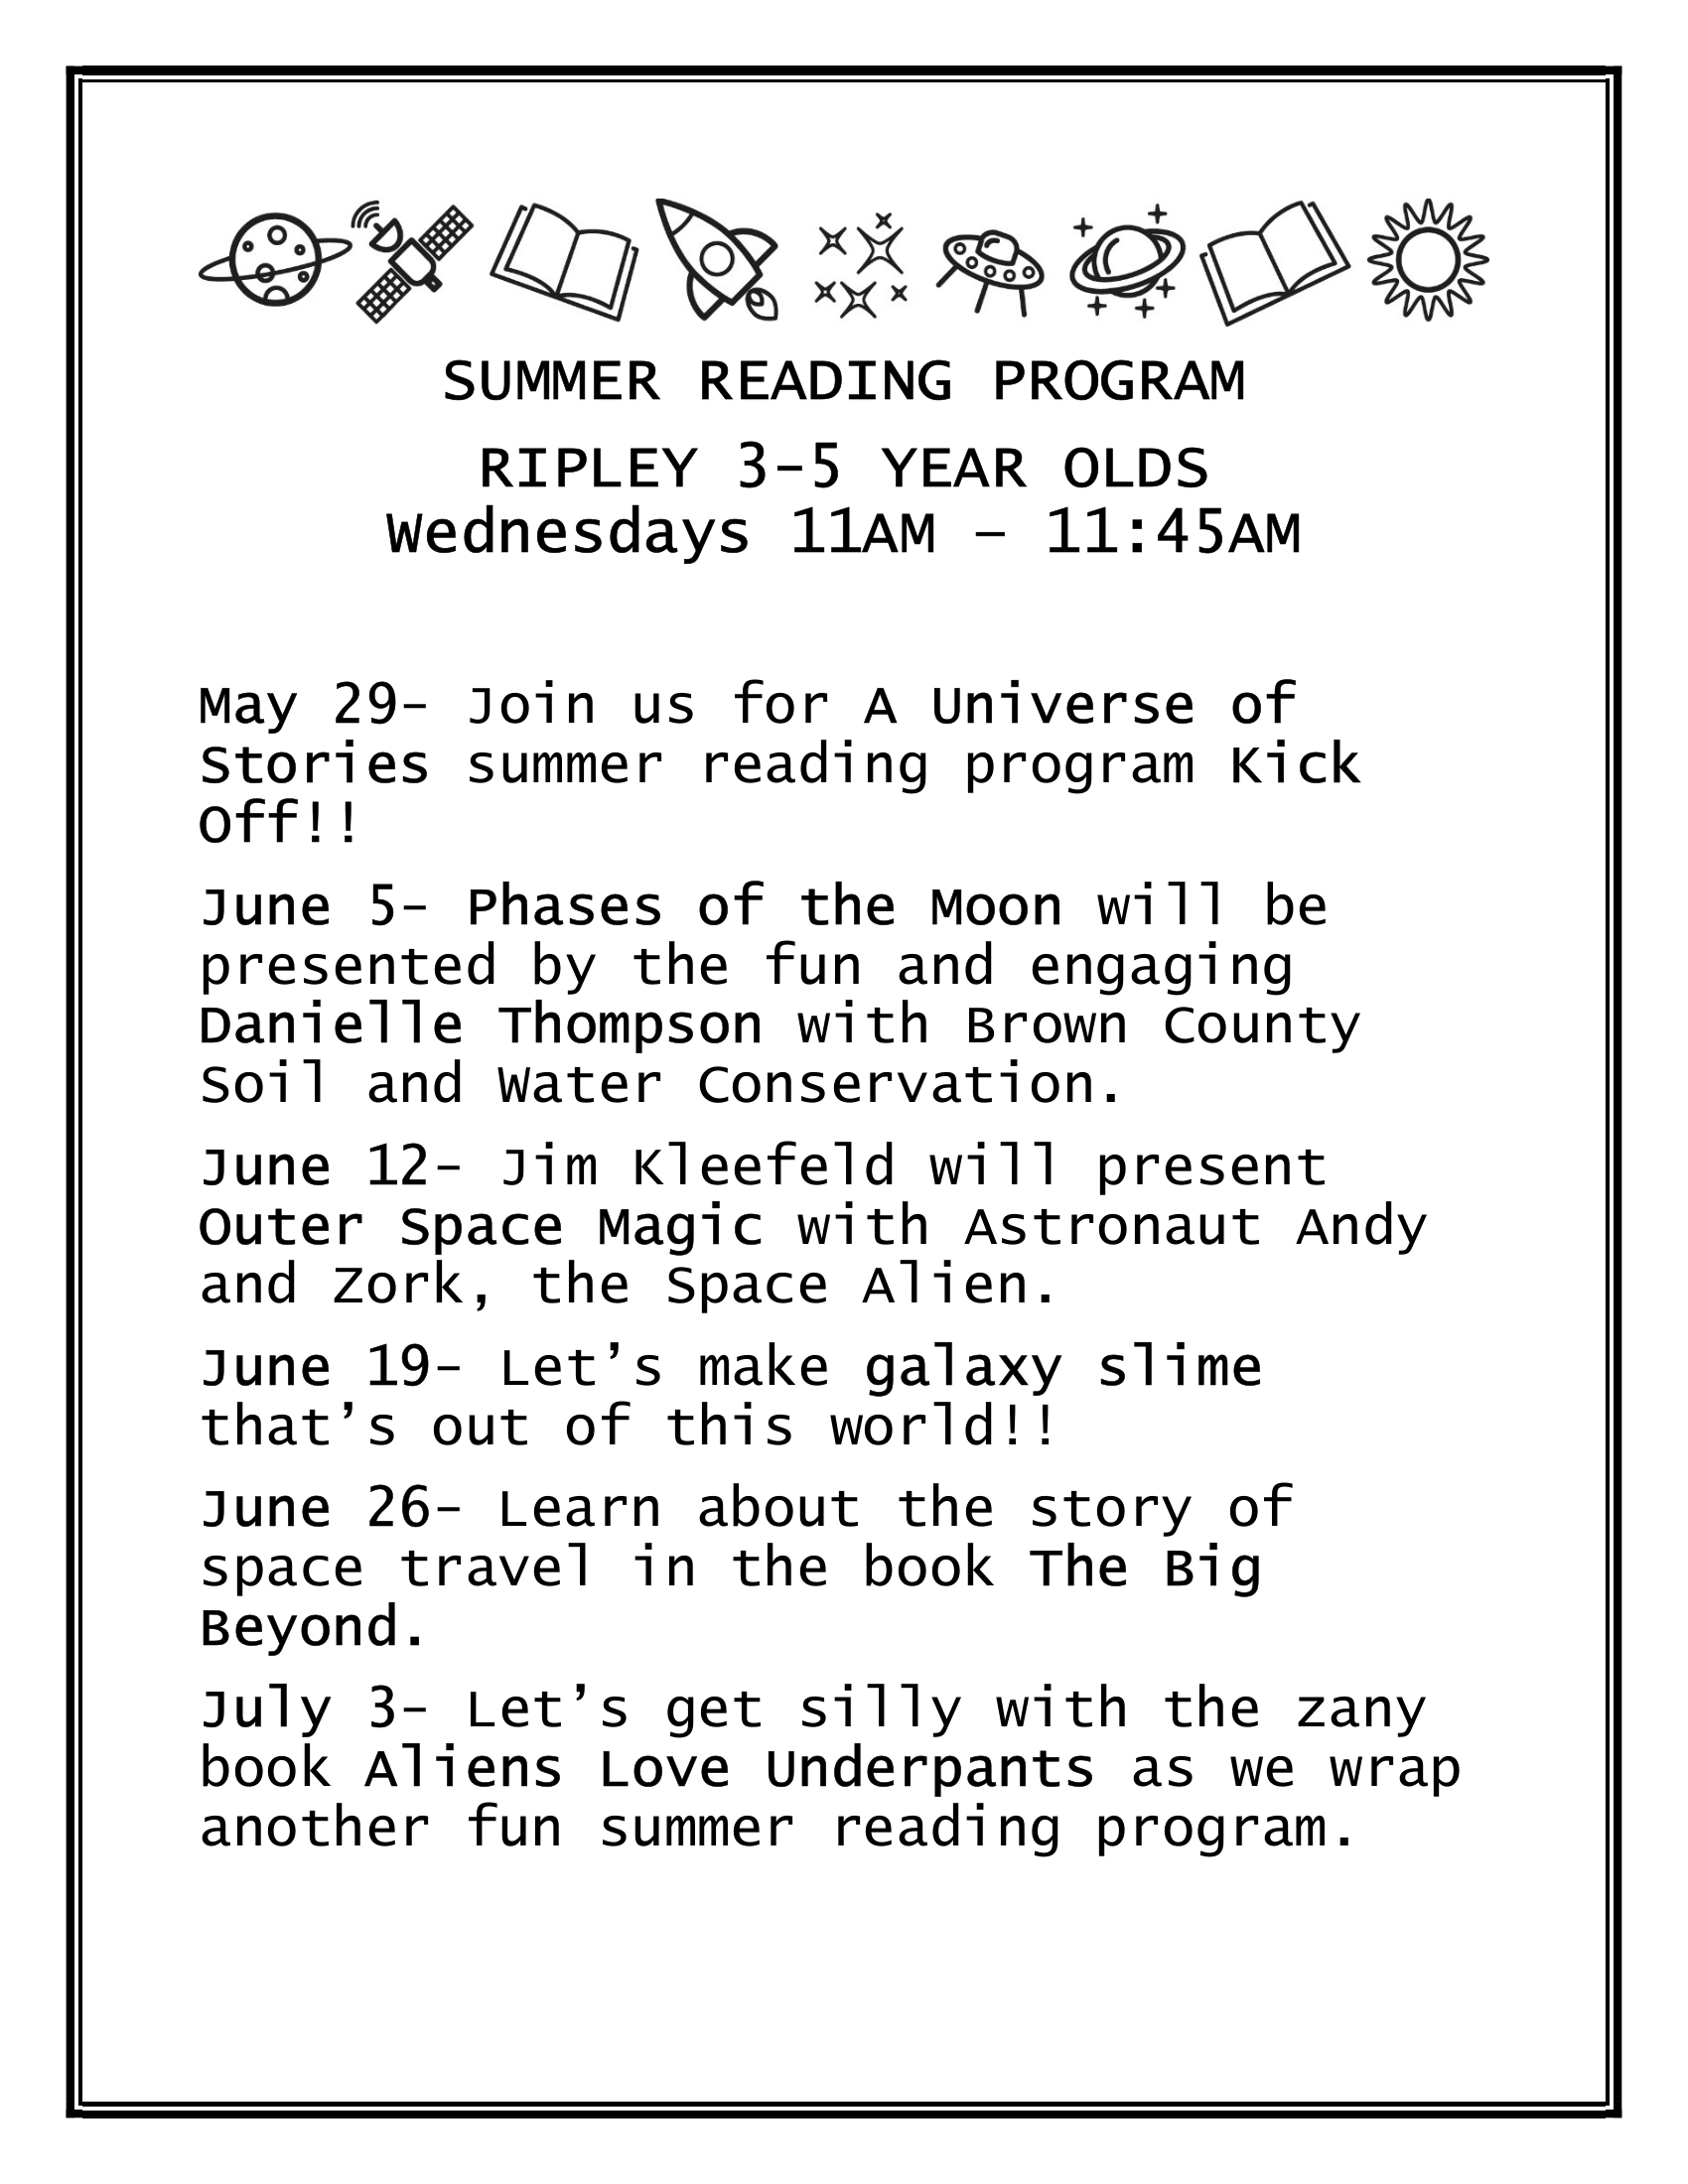 Summer Reading Program (3 to 5 Year Old) - Ripley Branch